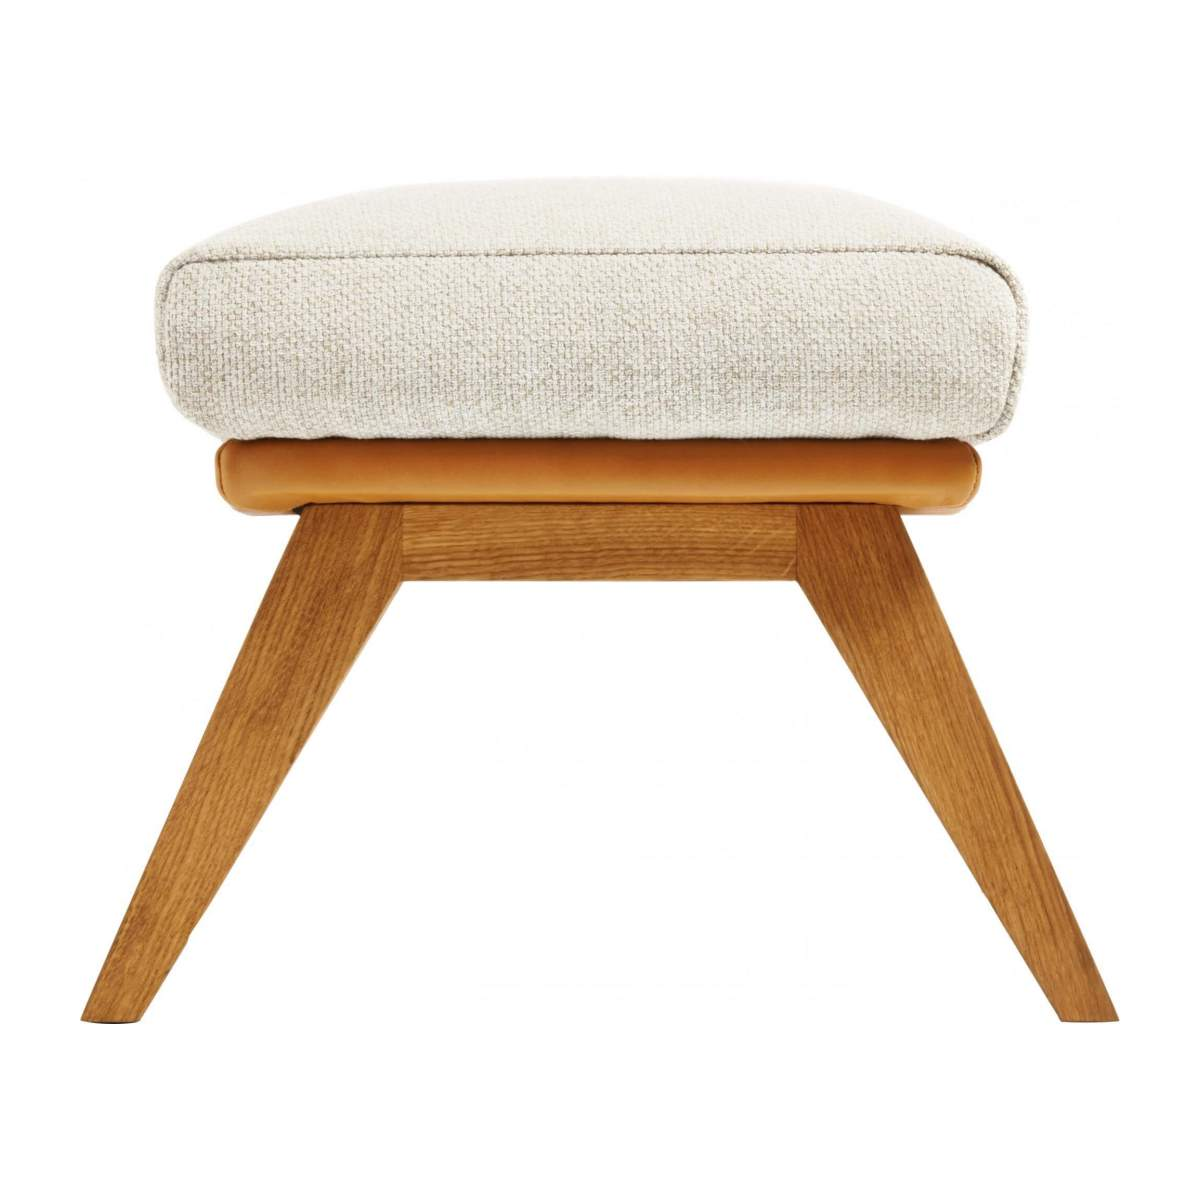 Footstool in Ancio fabric, nature et cuir marron with oak legs n°3